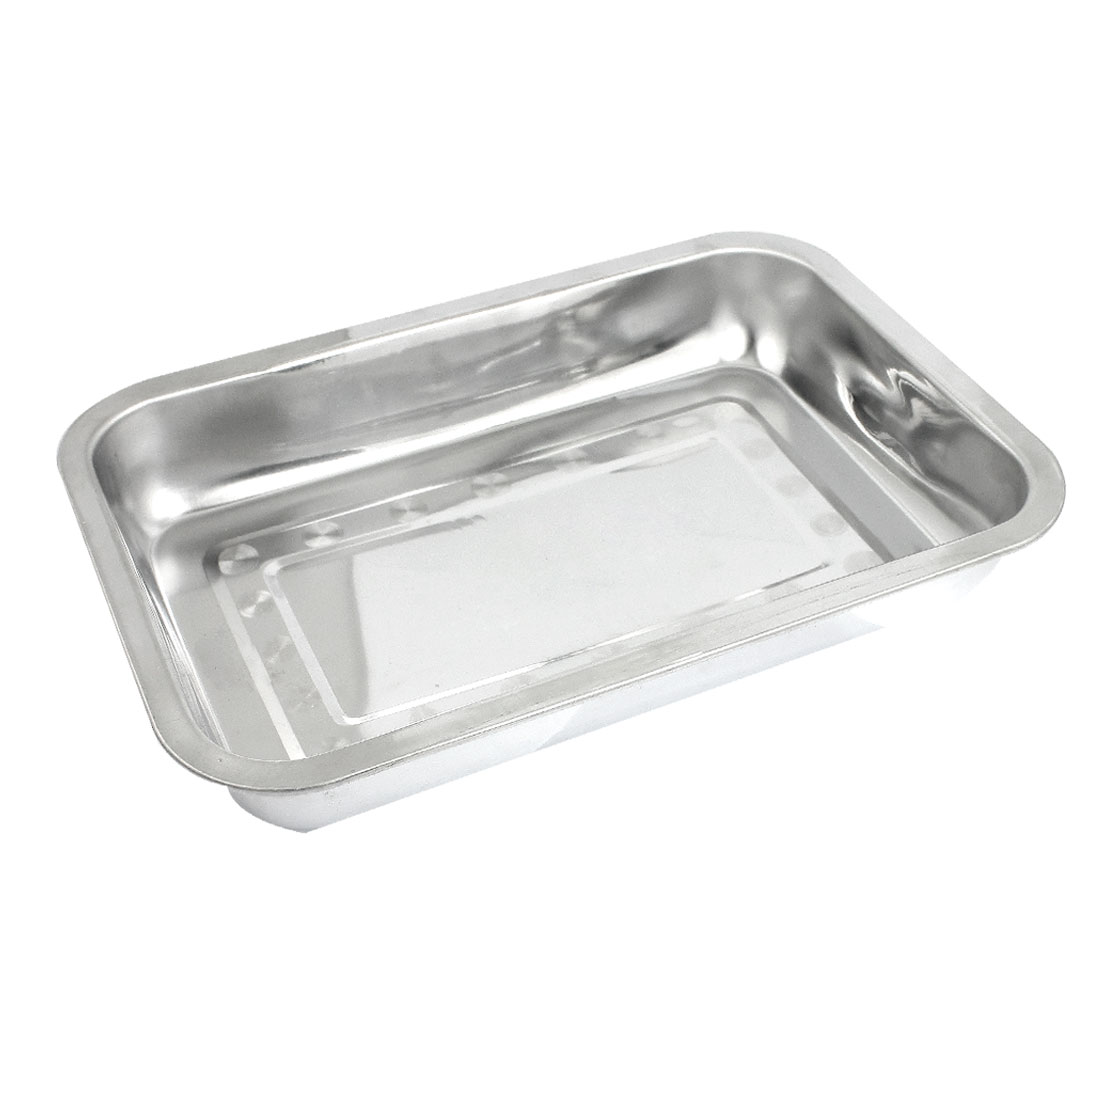 Camping Picnic Stainless Steel Dinner Plate Dish Tray 32cm x 22cm x 4cm